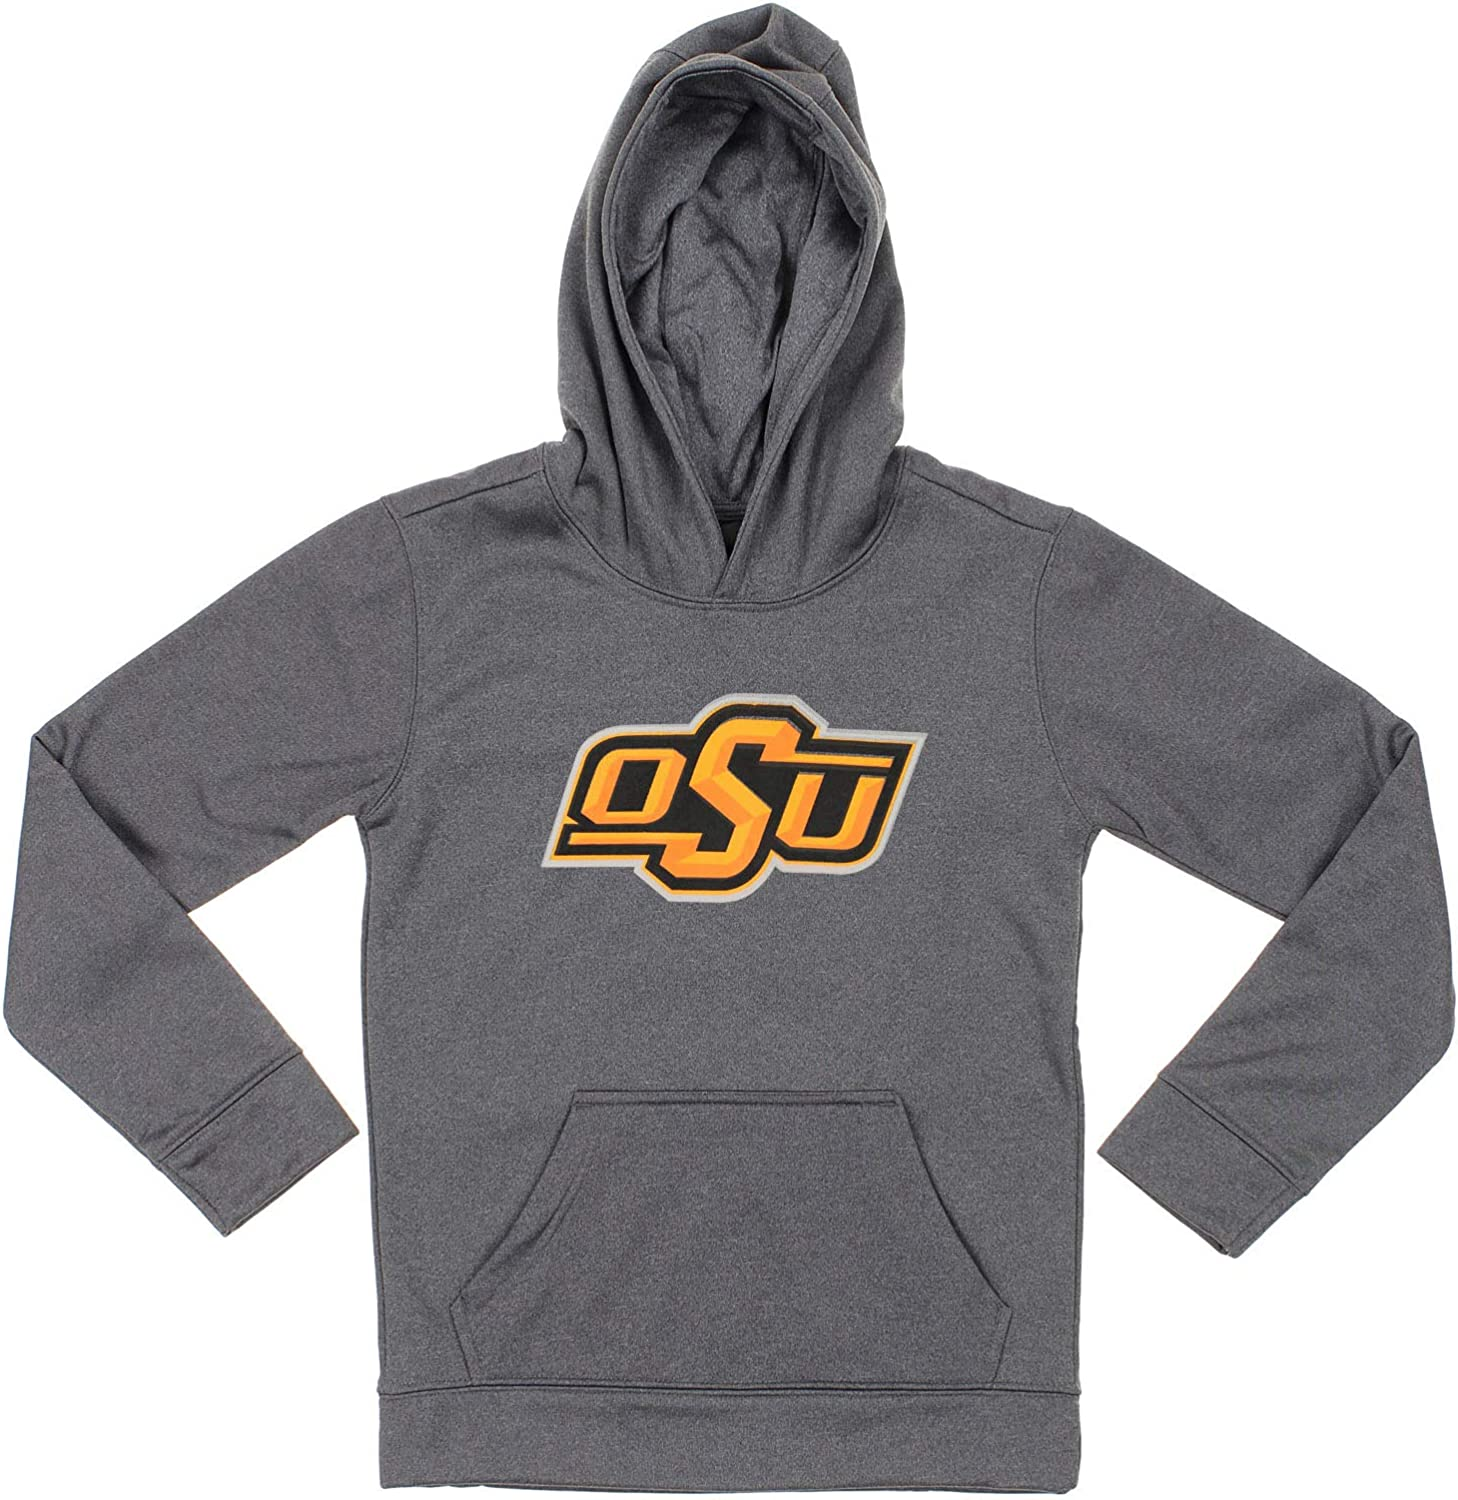 Outerstuff NCAA New Orleans Mall Big Boys Youth Grey 8-20 Okl Hoodie Super popular specialty store Pullover